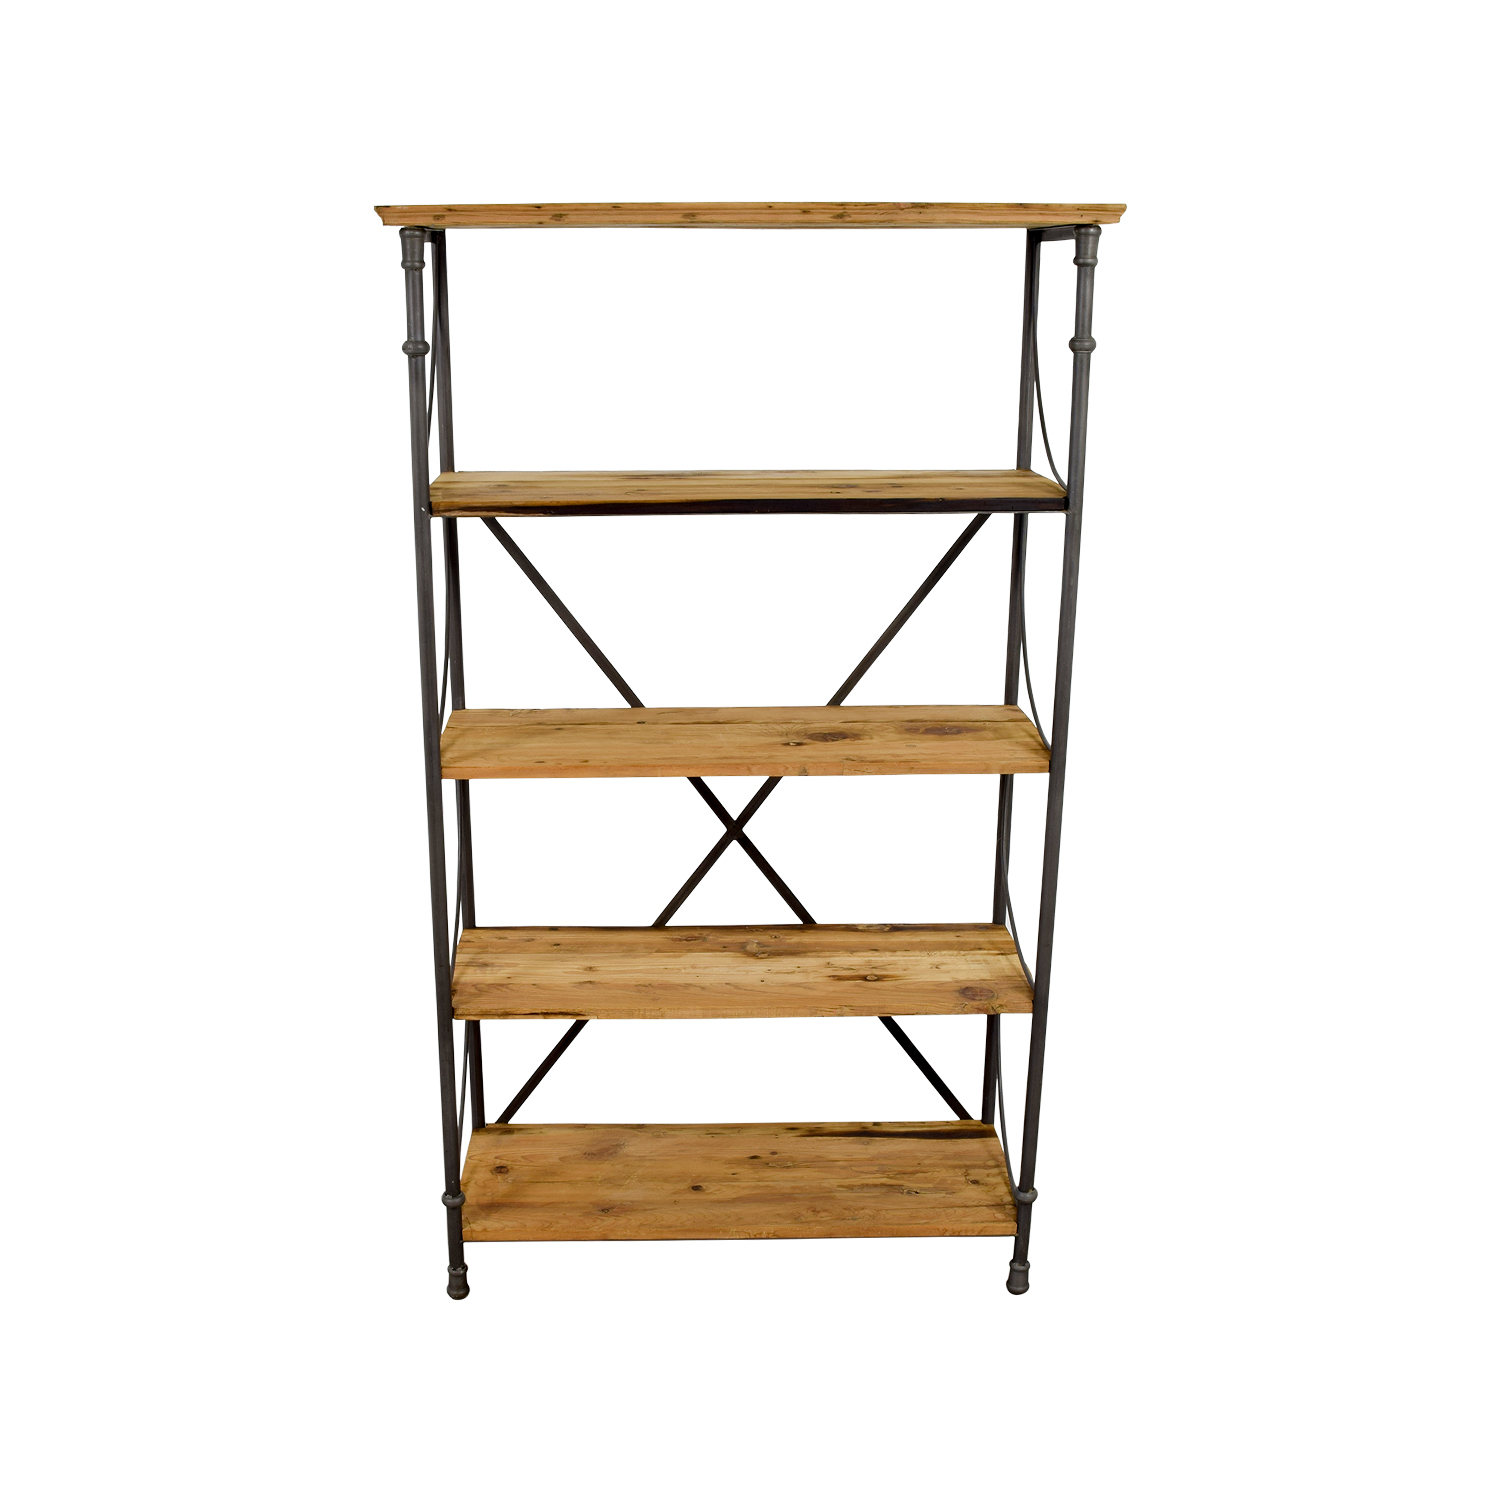 Shop Hudson Goods Reclaimed Wood Bookcase Hudson Goods Bookcases &  Shelving